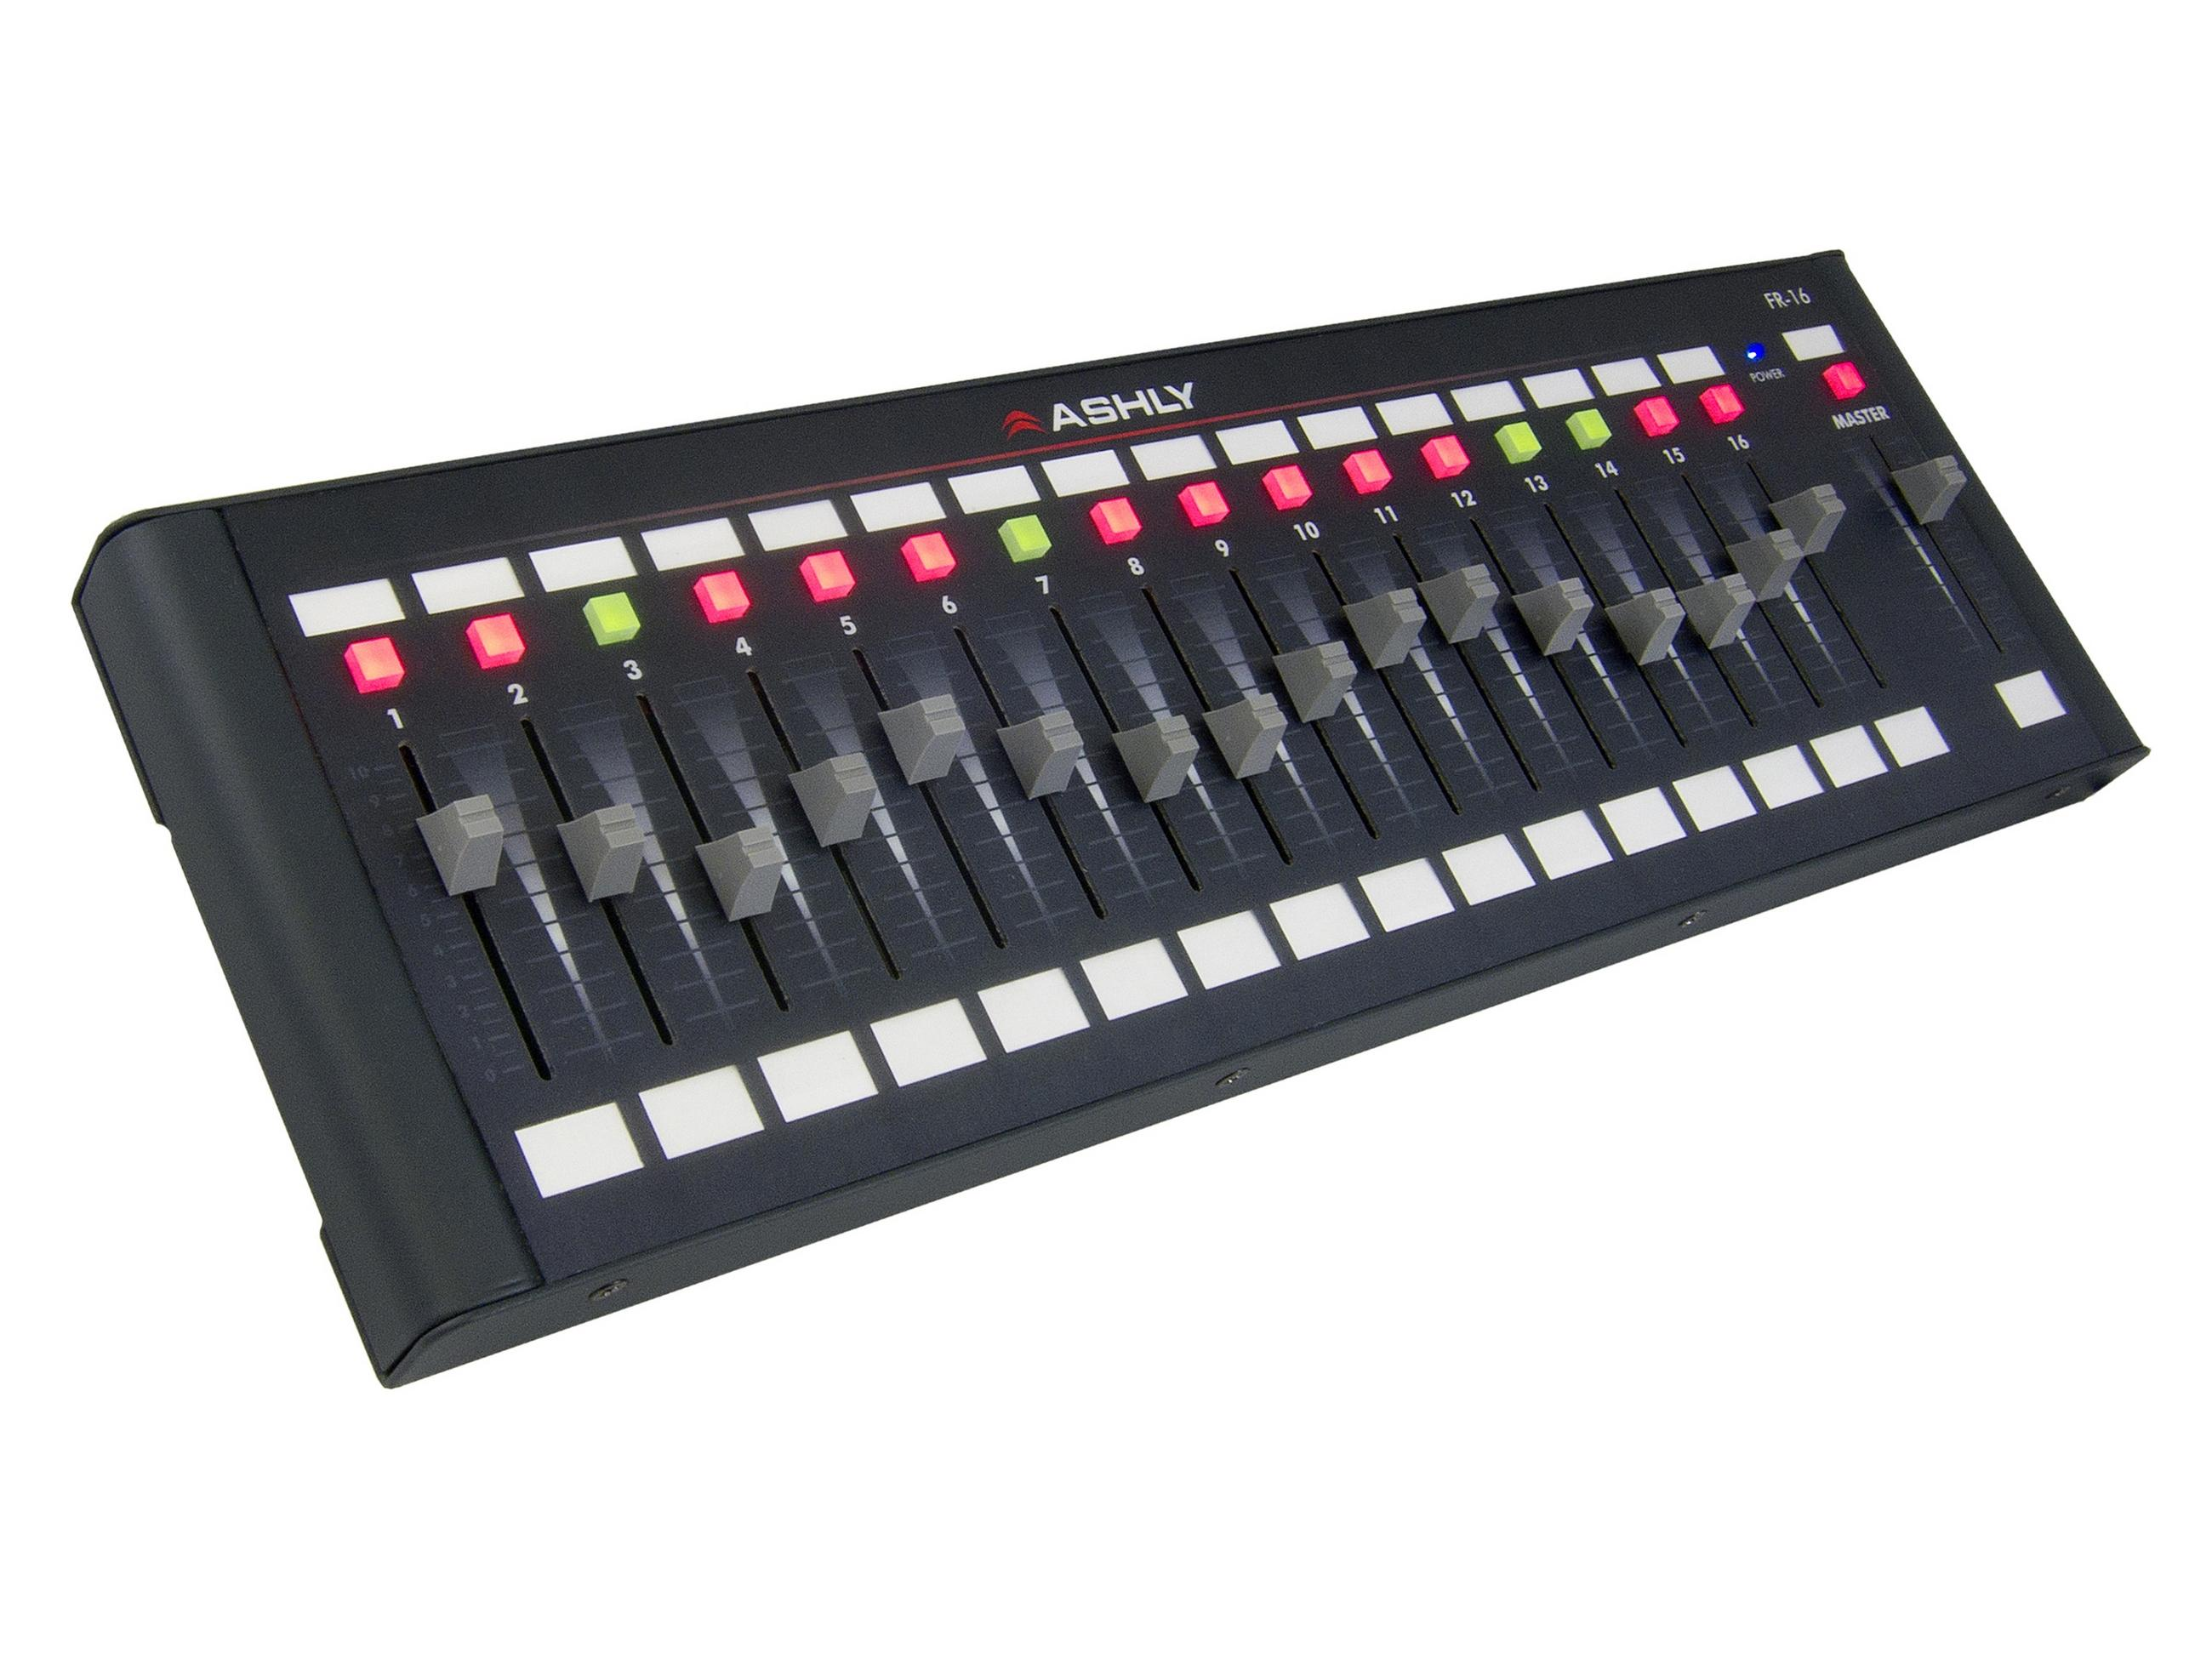 Ashly FR-16 Fader Remote/Network Programmable 16-Ch   Master